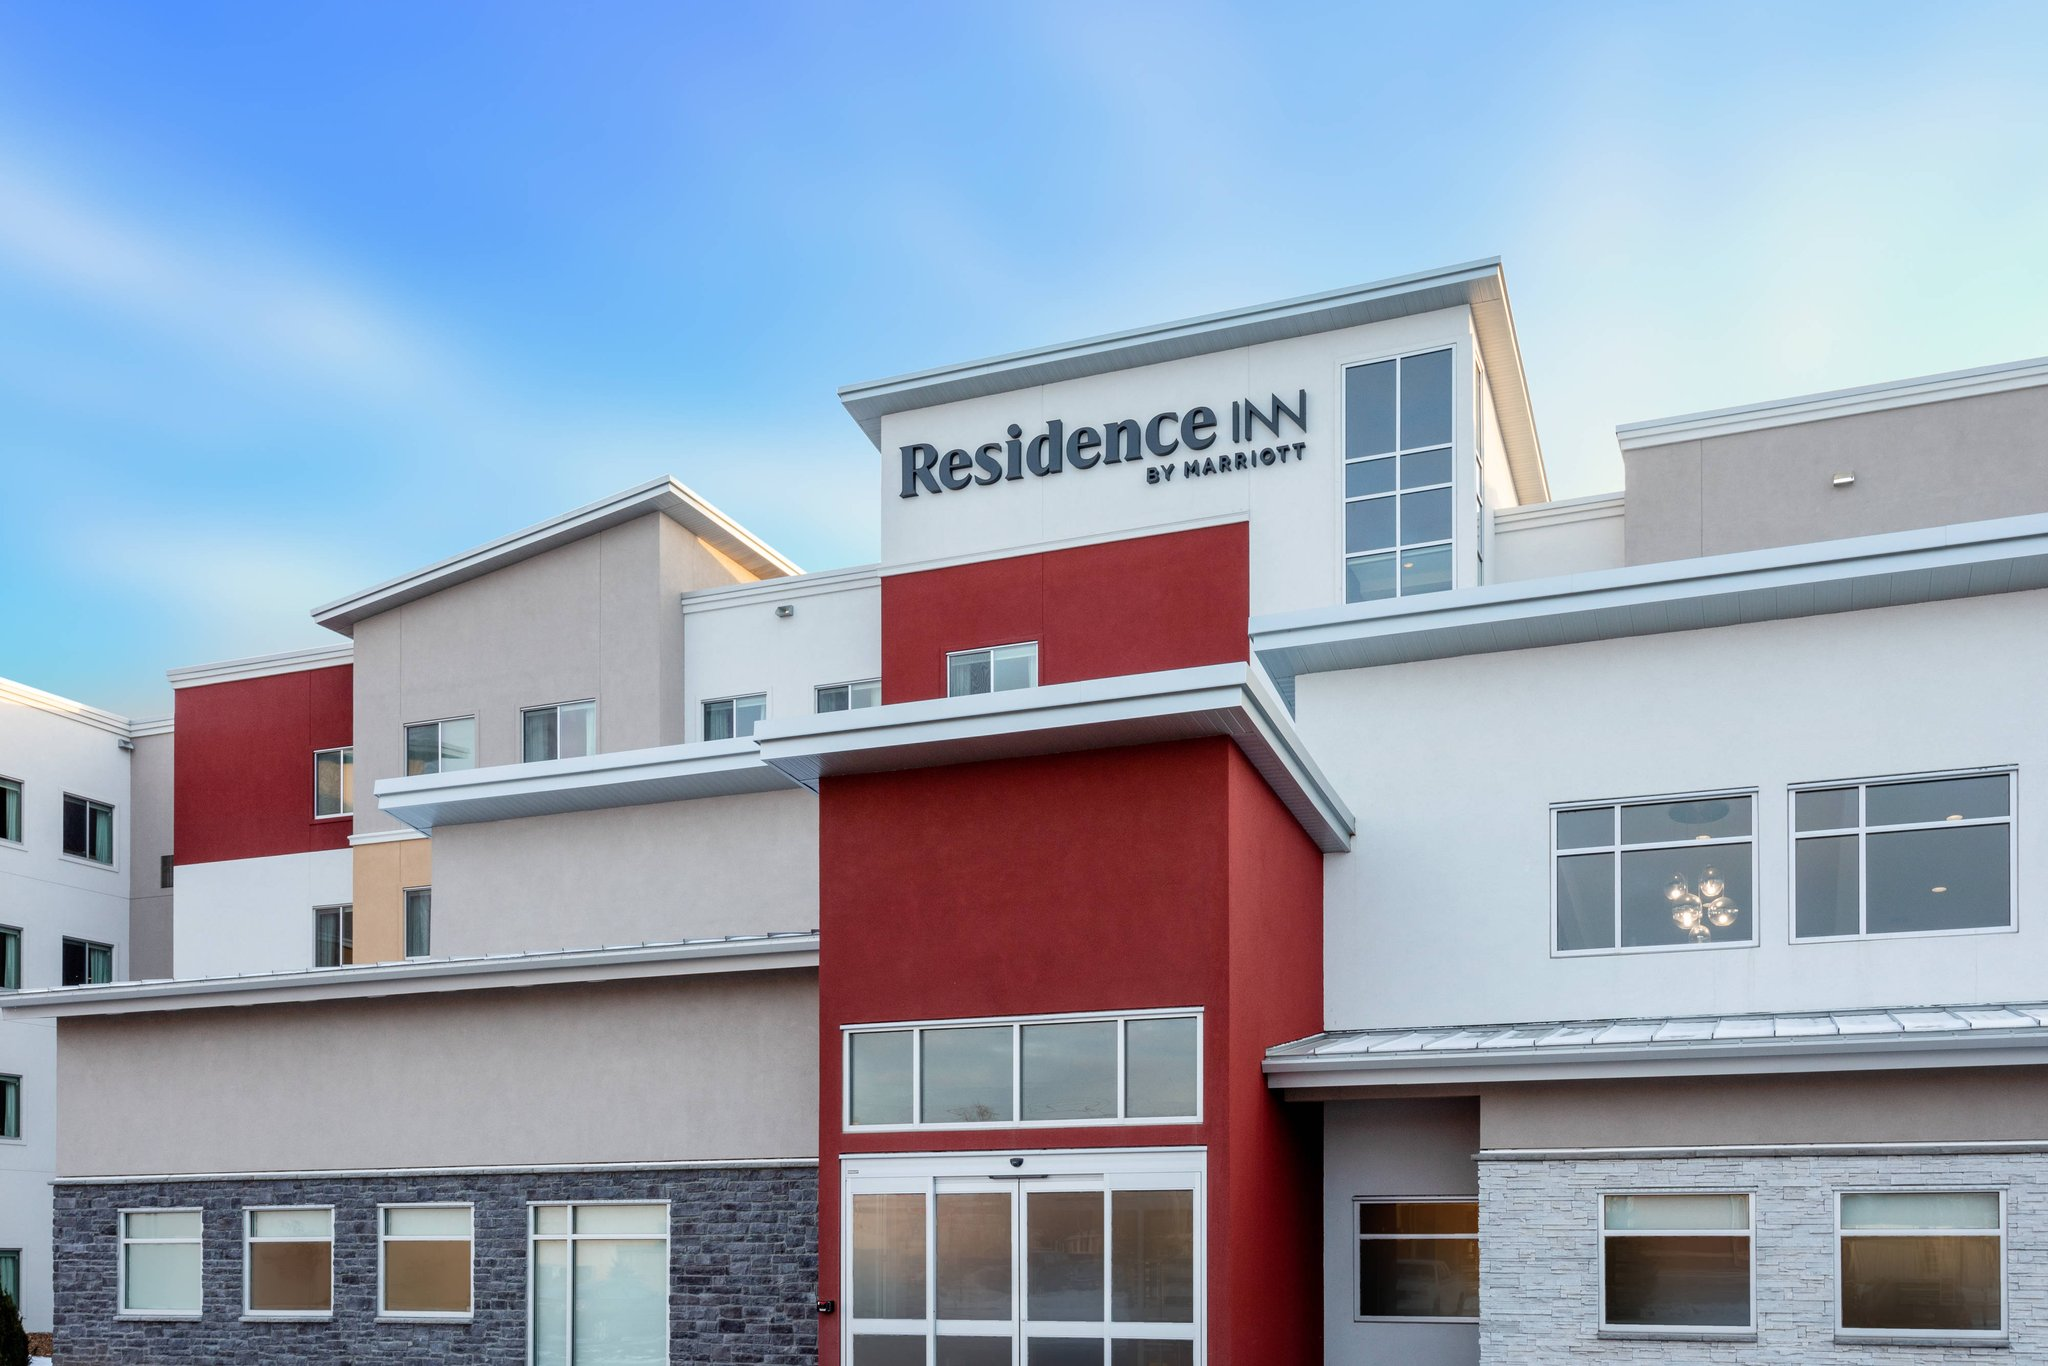 Residence Inn by Marriott St Cloud